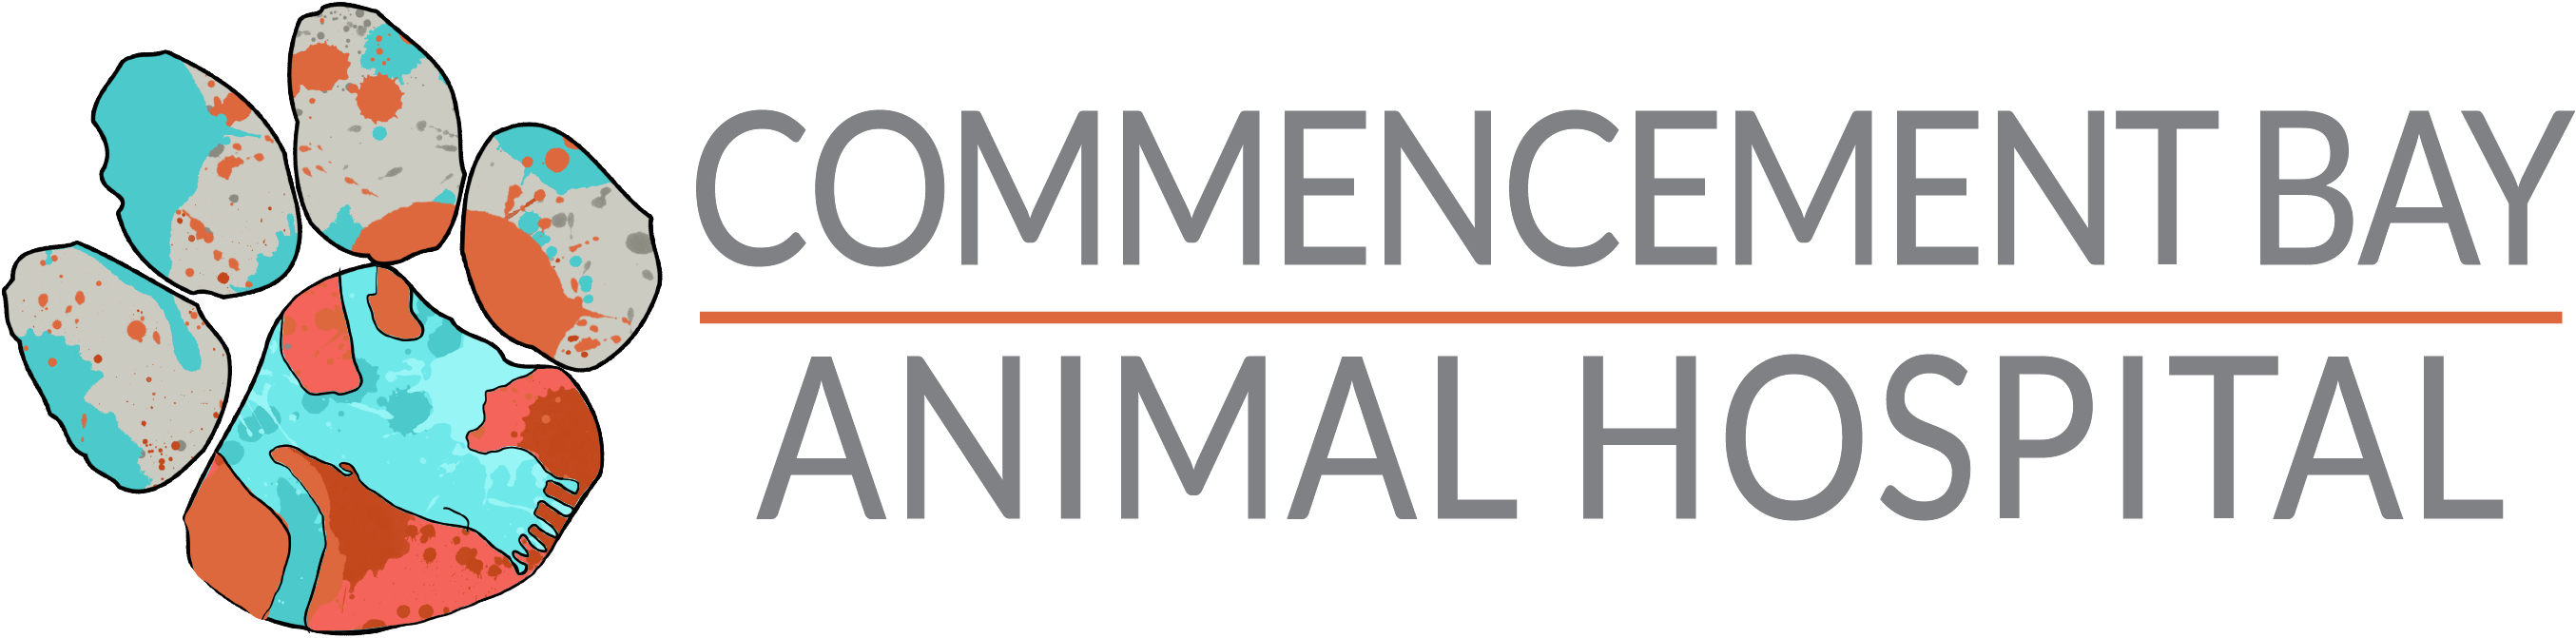 Commencement Bay Animal Hospital